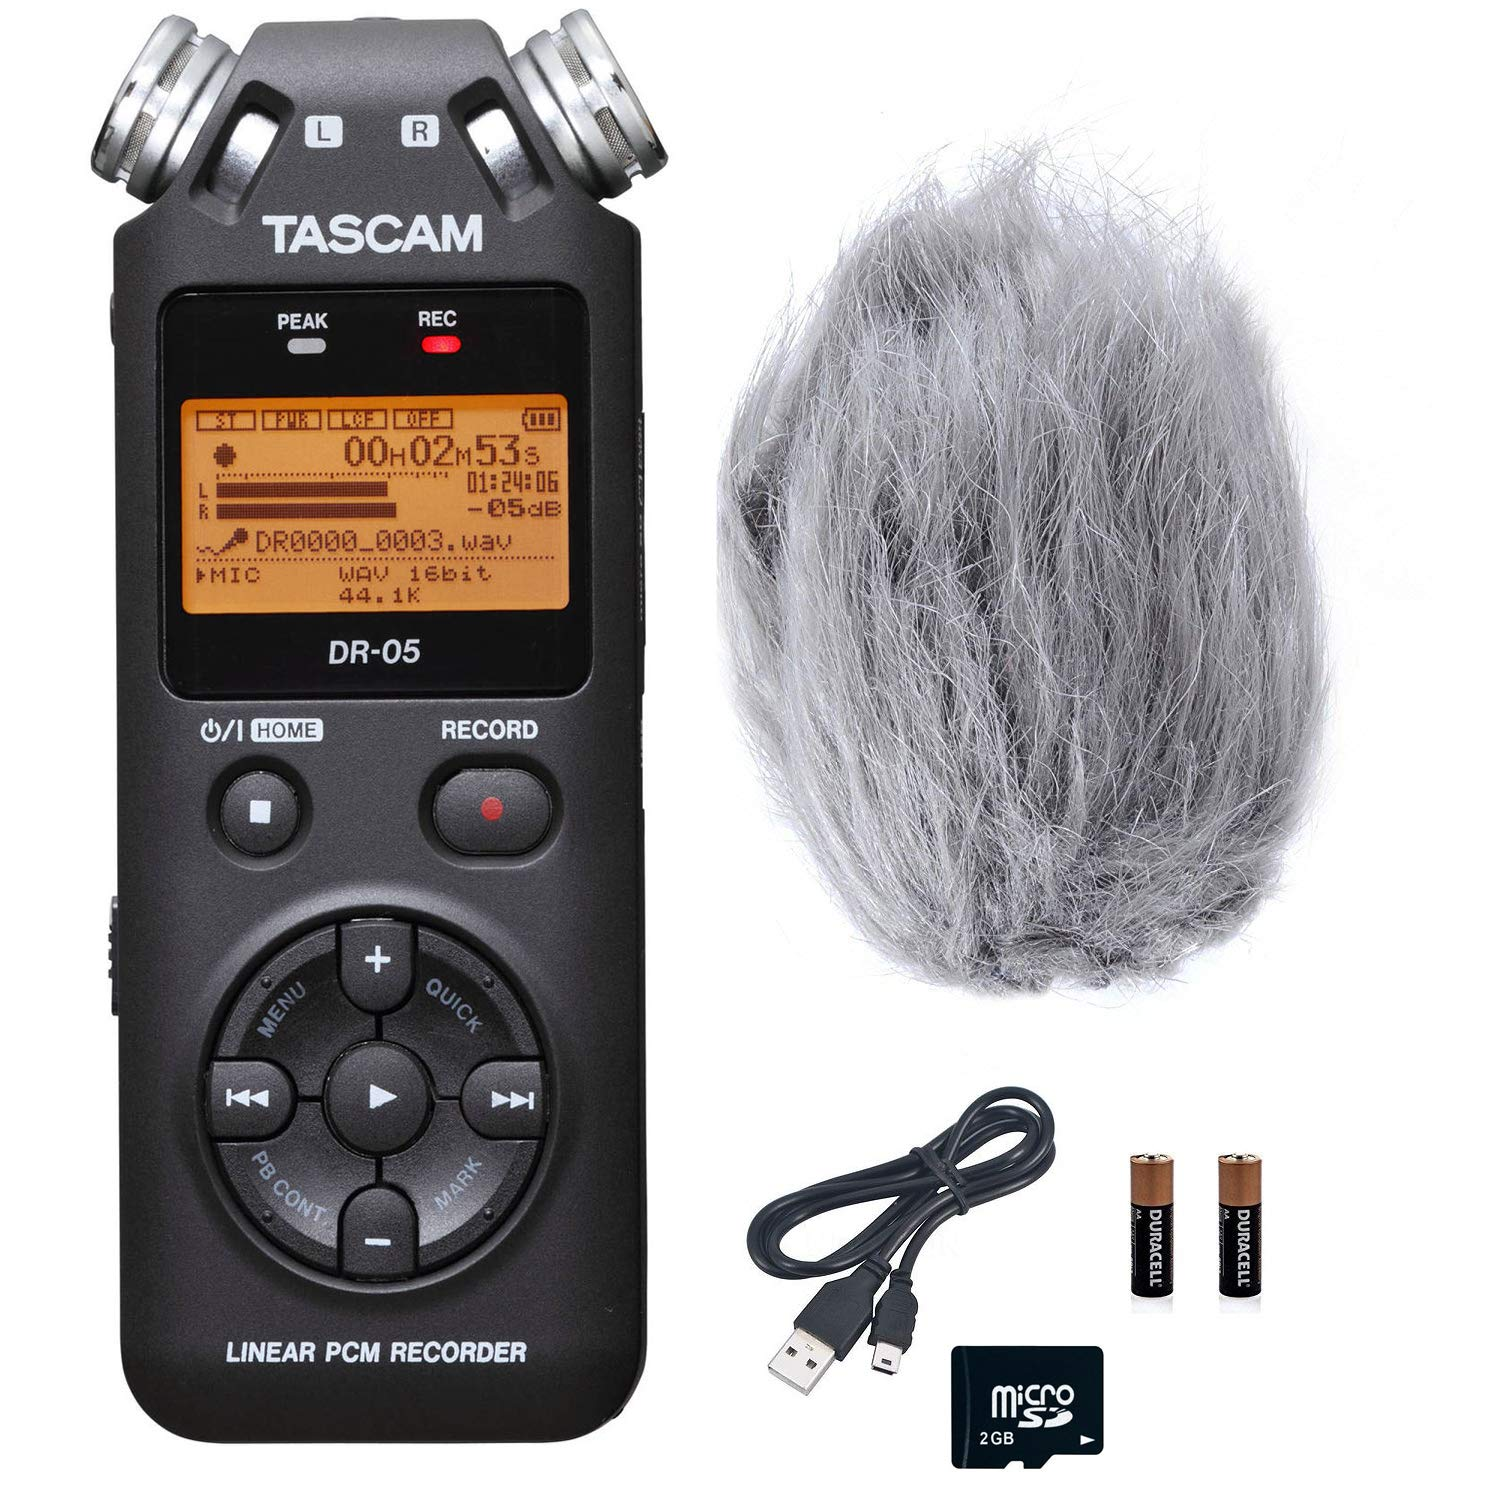 Tascam DR-05 Portable Handheld Digital Audio Recorder Bundle with Movo Deadcat Furry Outdoor Windshield (Version 2 / Black)